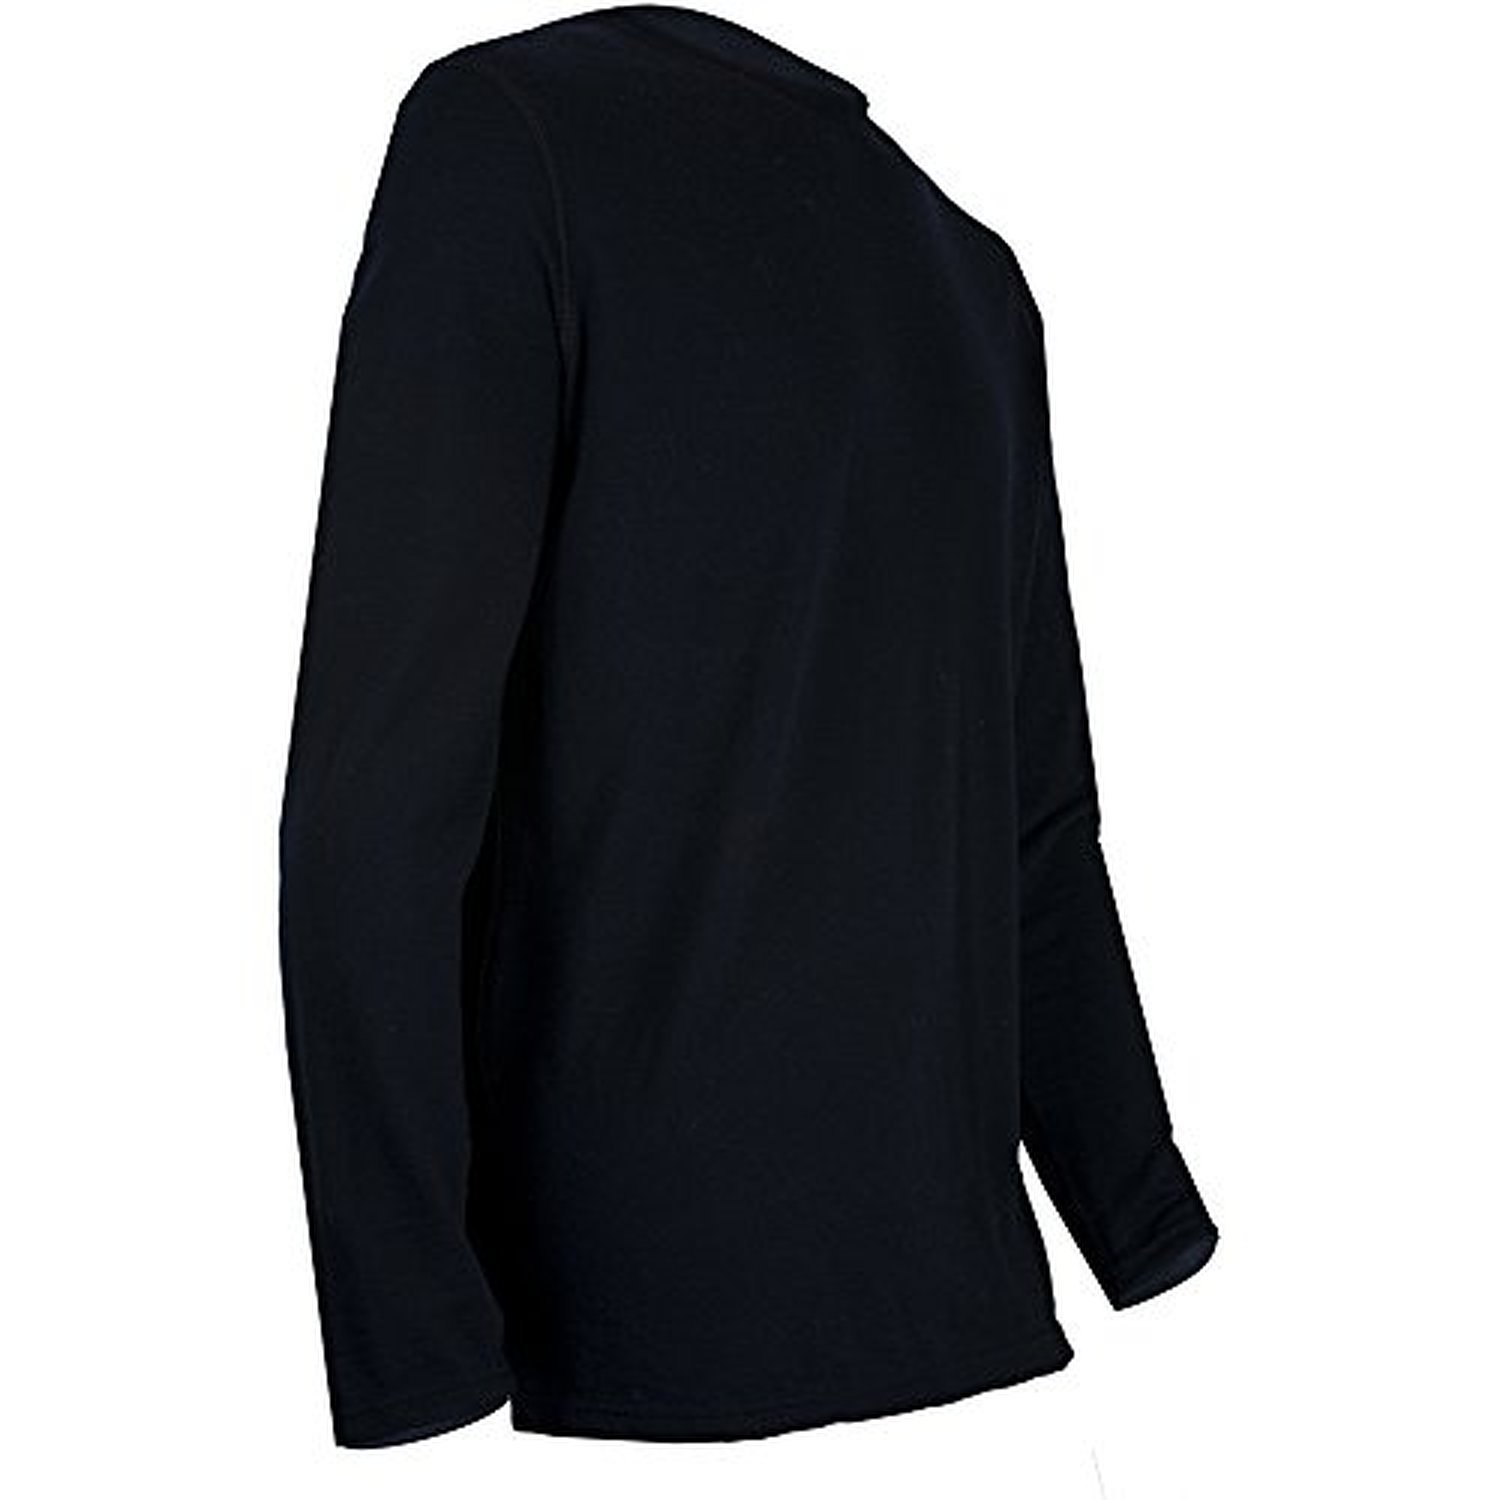 Black, Medium Polarmax Mens 2015 Montana Wool 1.0 LS Crew Baselayer